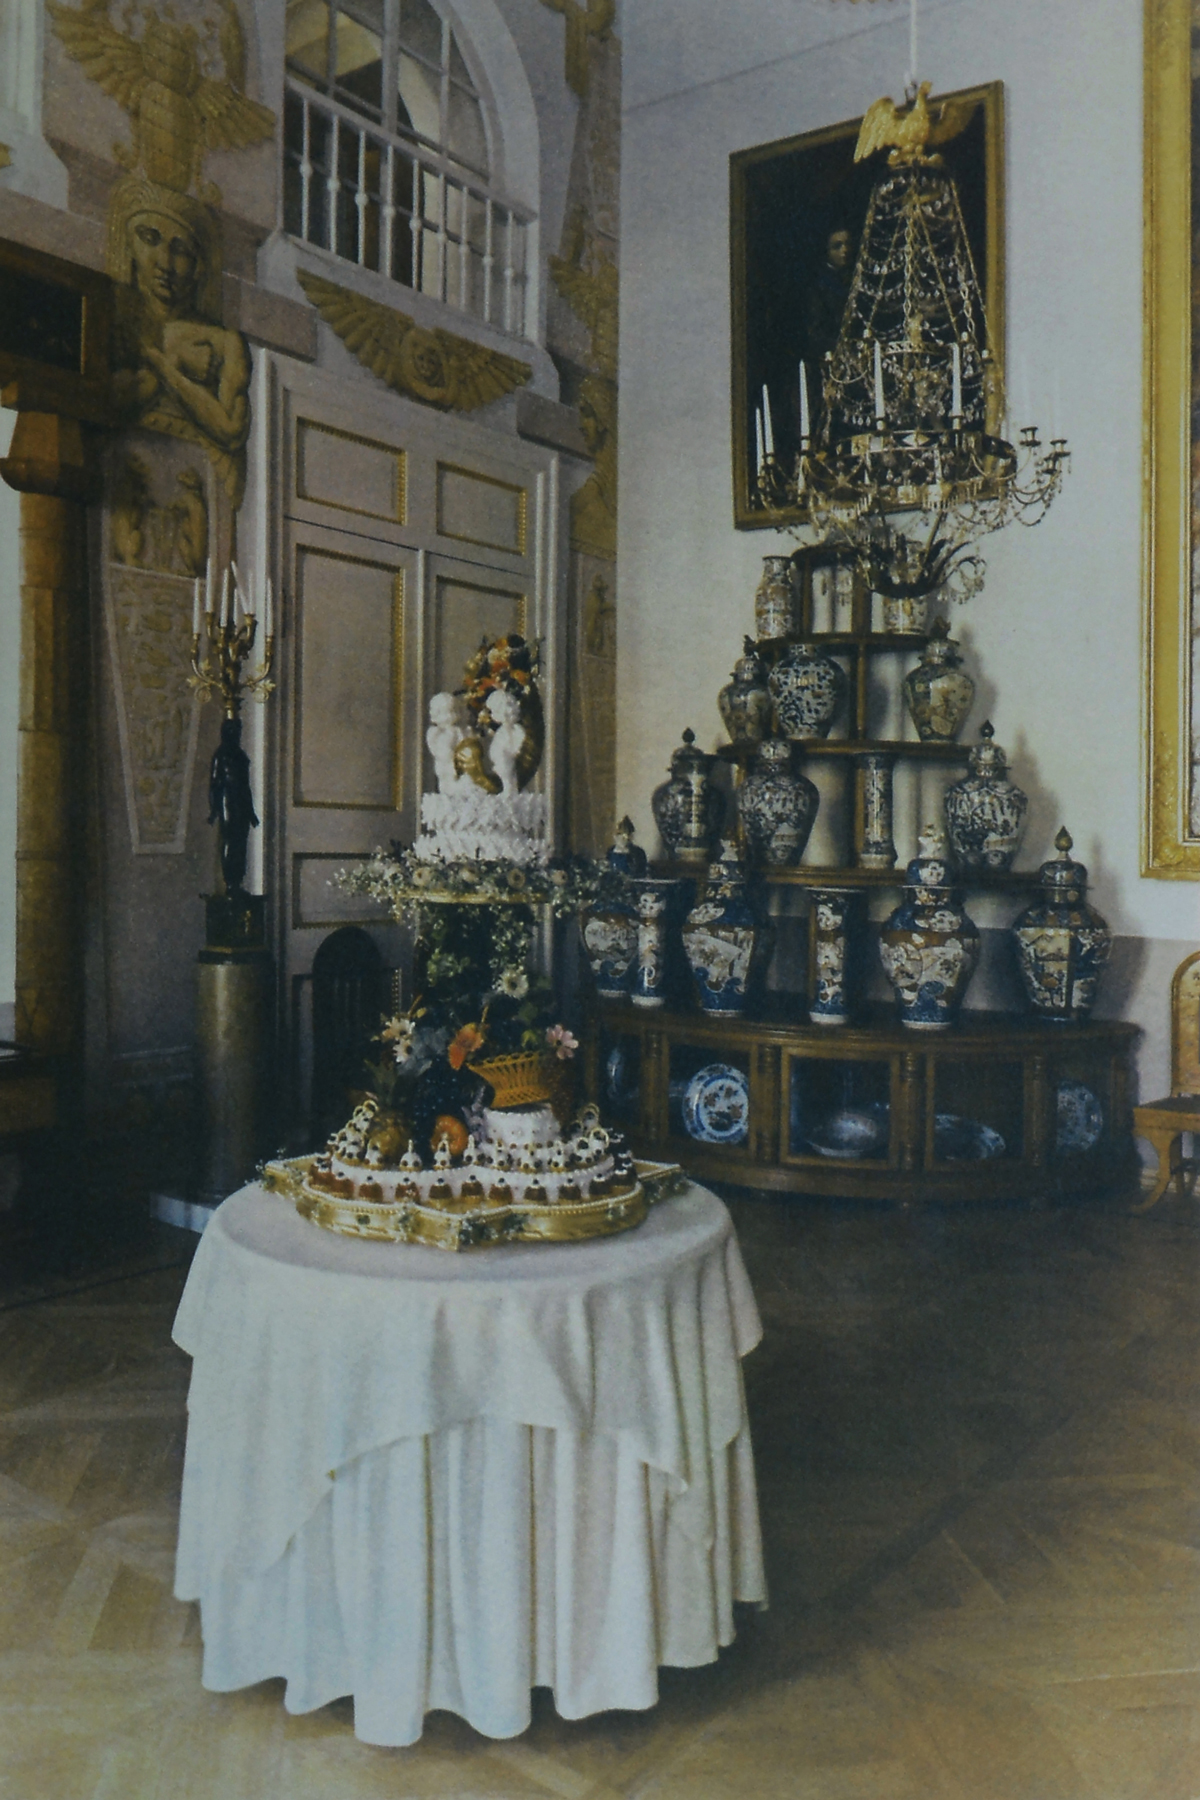 Maria_Vinogradova_Alone in a Palace_Museum Attendant's Late Afternoon Daydream_4.jpg